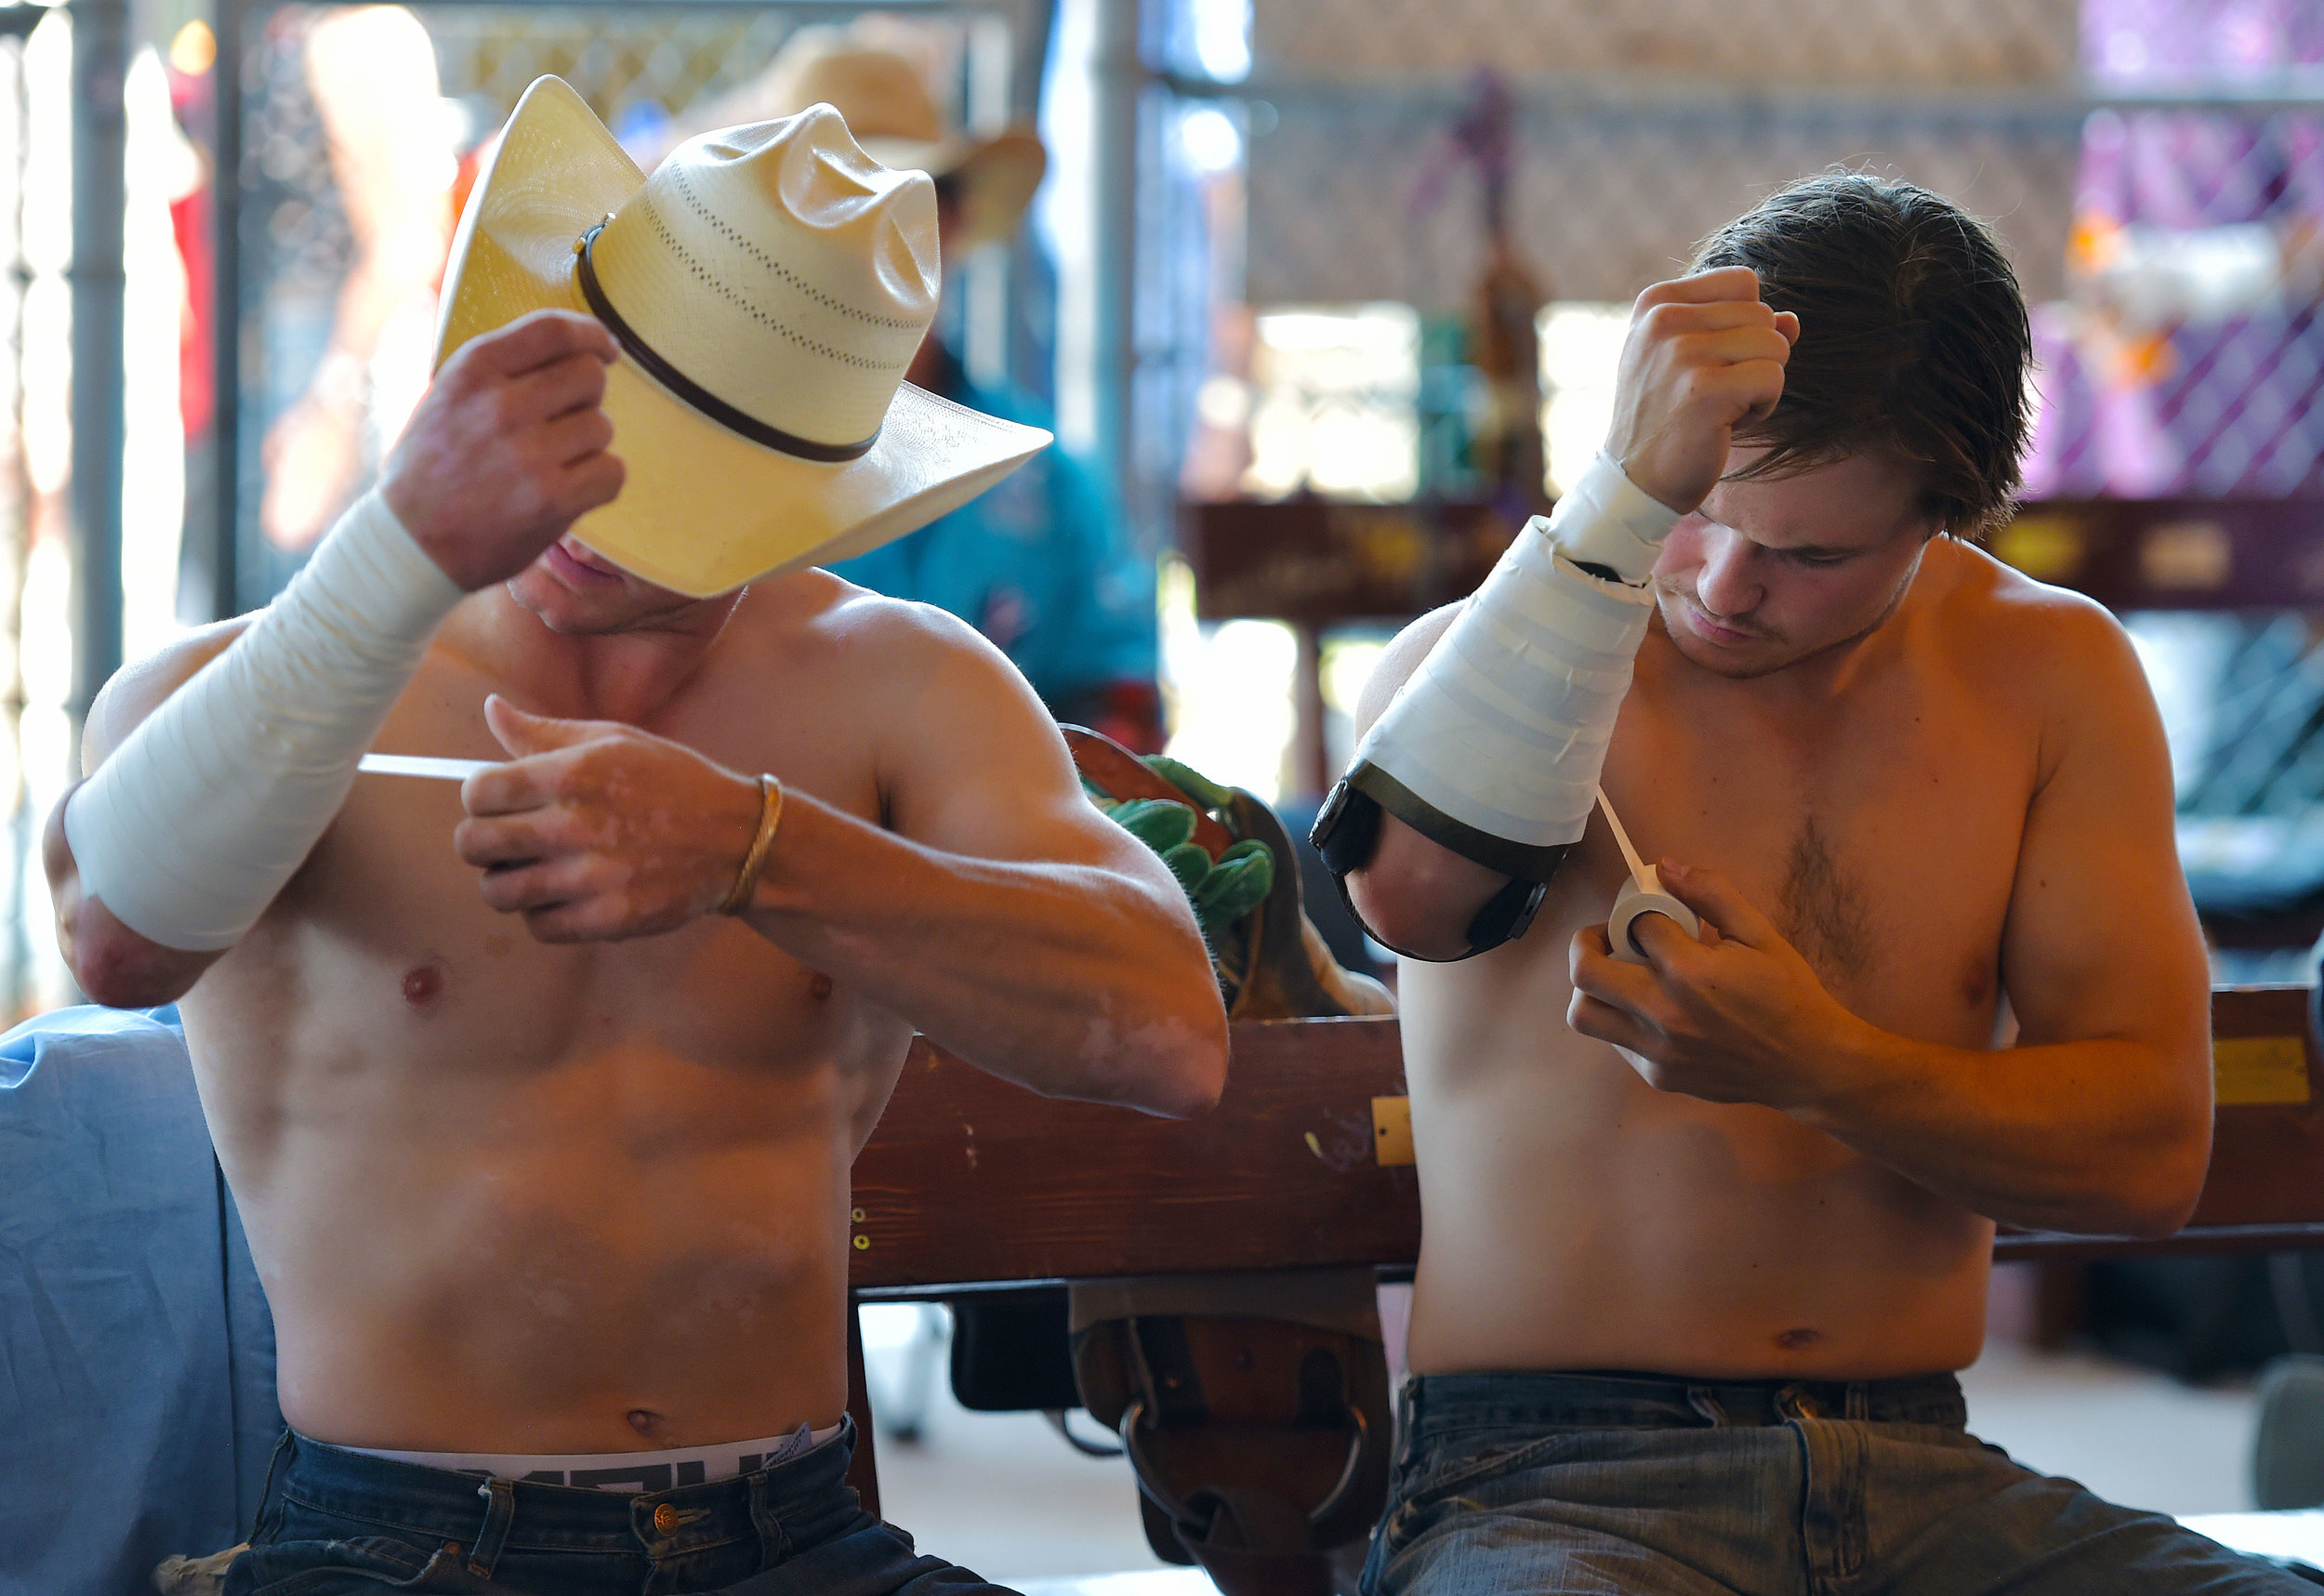 A pair of competitors tape up their arms prior to the 6th performance at the 122nd Cheyenne Frontier Days Rodeo at Frontier Park in Cheyenne, Wyoming Wednesday, July 25, 2018.